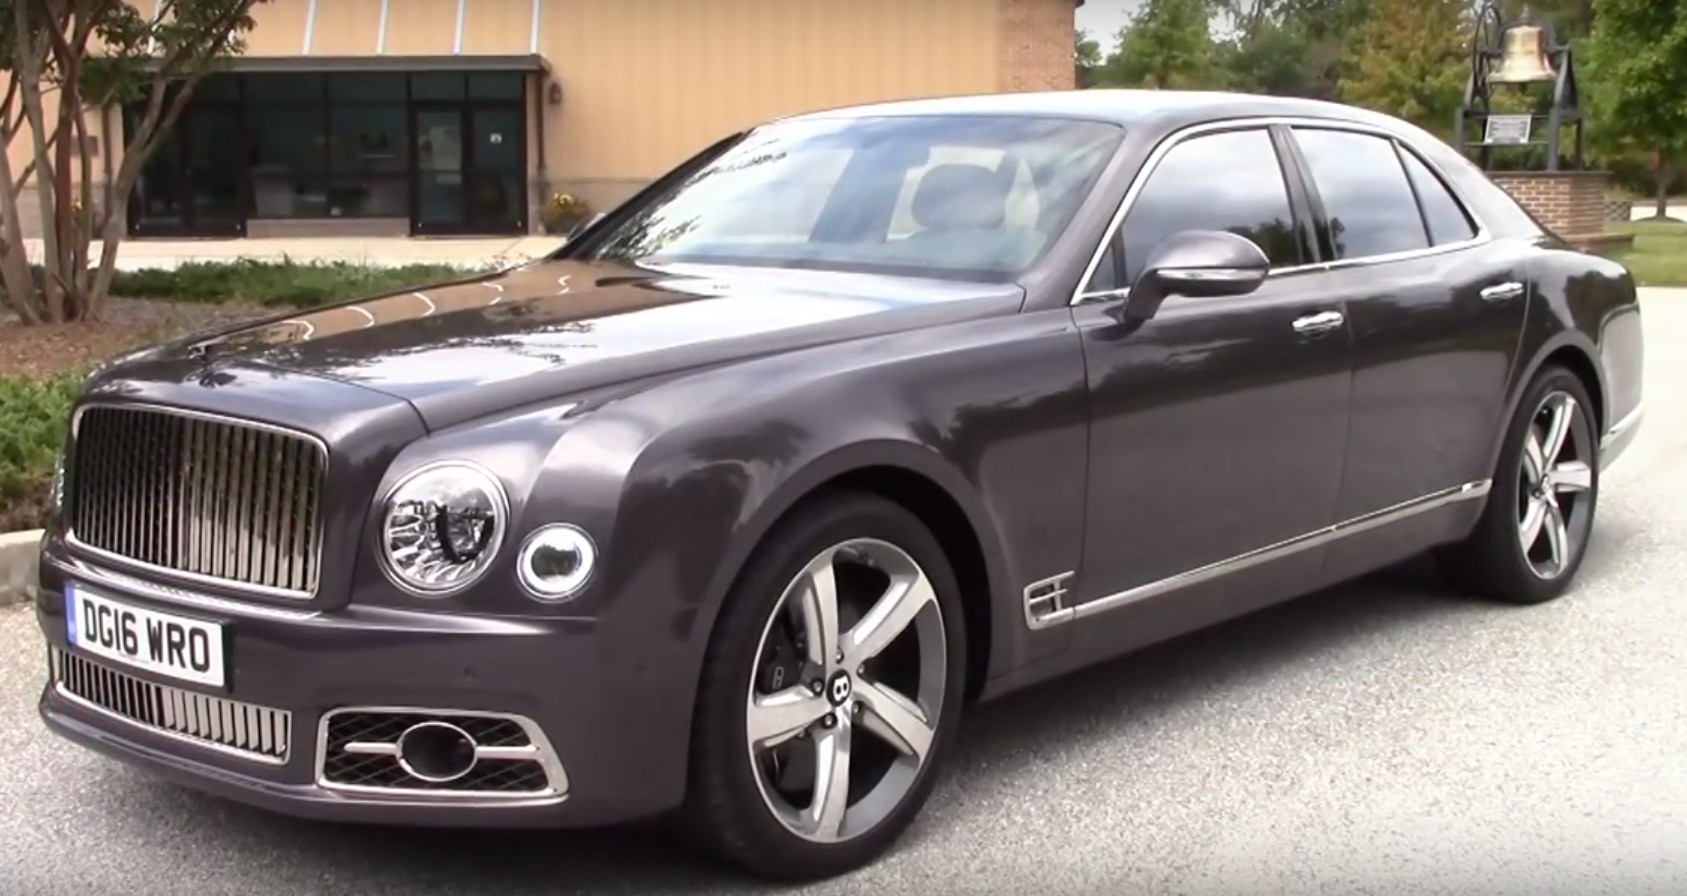 Премиум класс Bentley Mulsanne